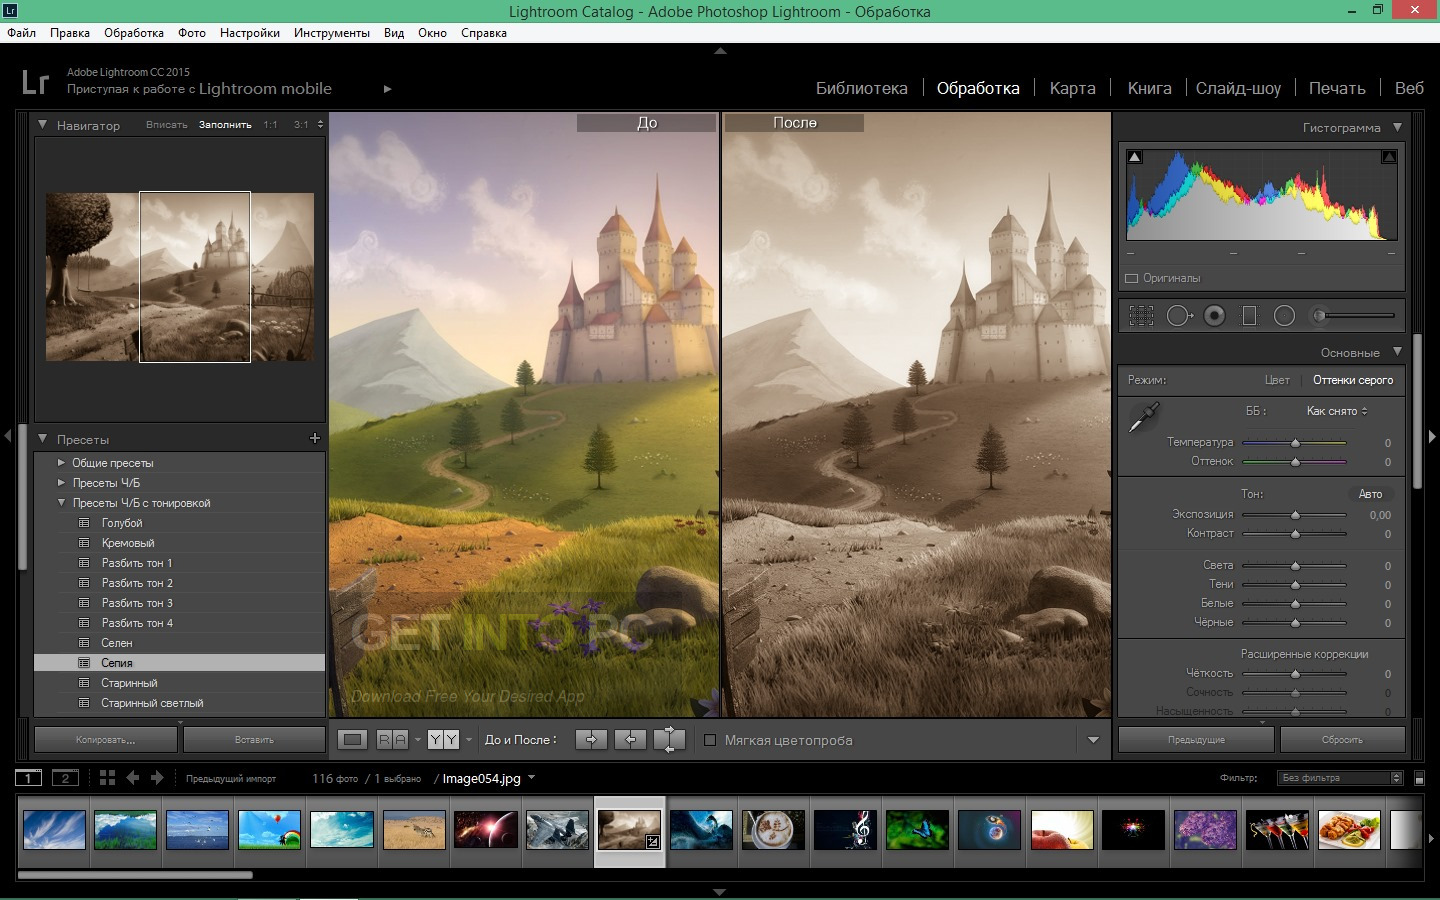 Adobe Photoshop Lightroom Software for Sale